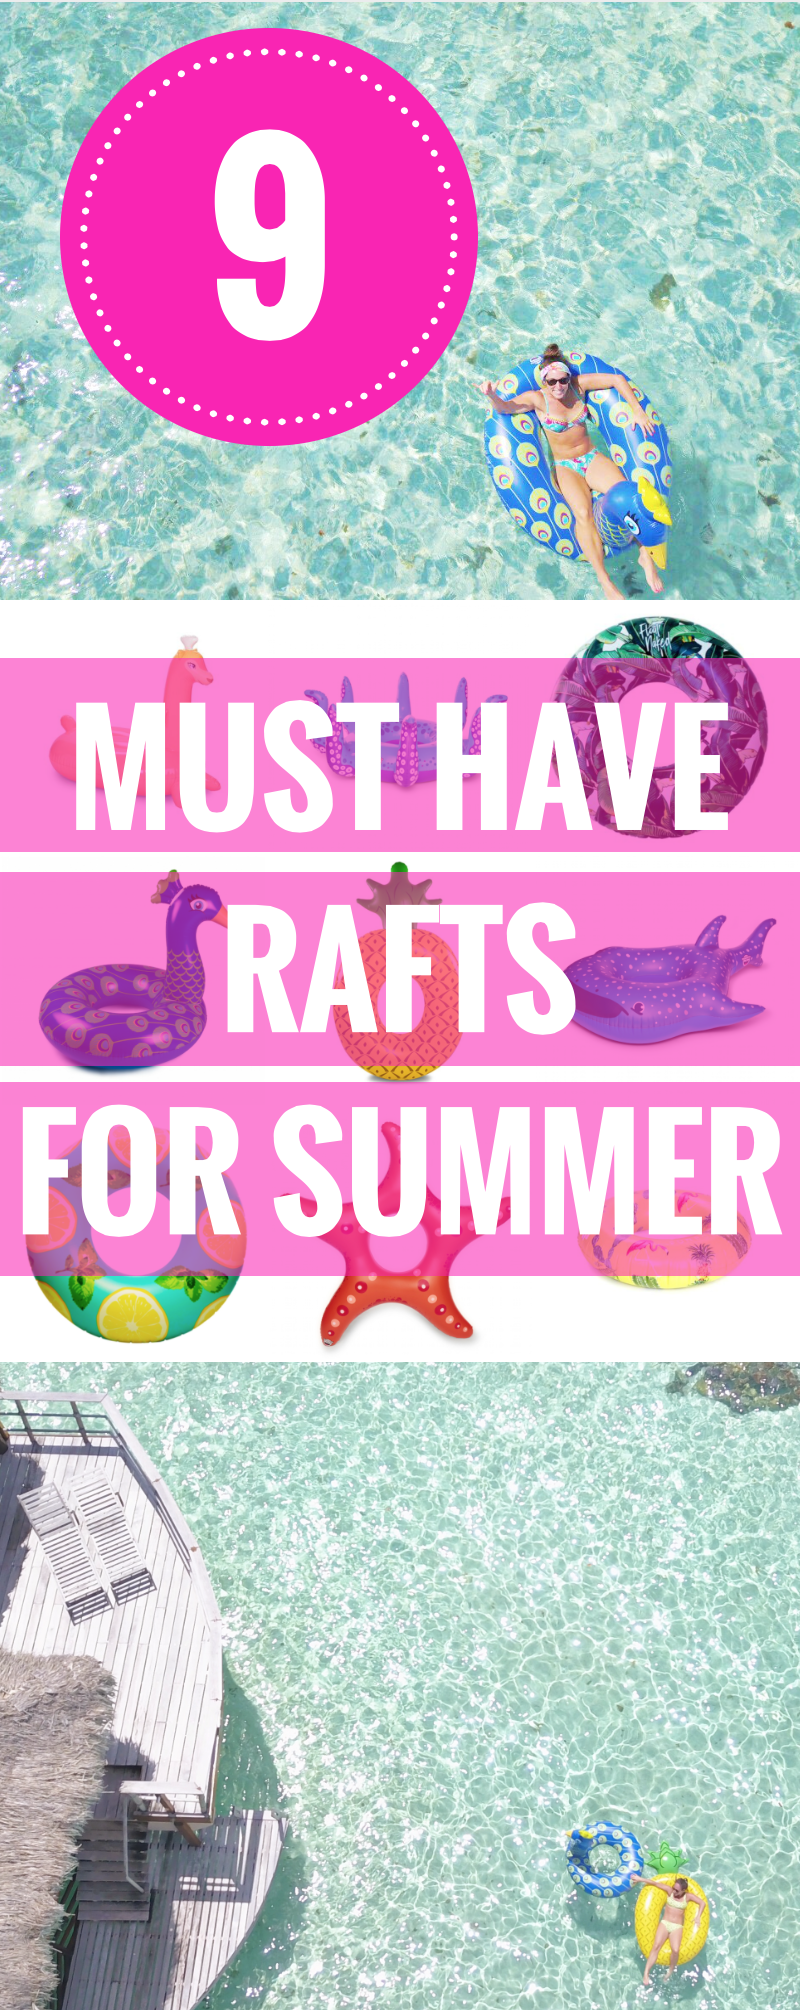 Loving Lately: Pool Float Edition - Pool Floats For Adults - Summer Beach Floats - Awesome Floats - Pool and Beach Floats For Kids - Communikait by Kait Hanson